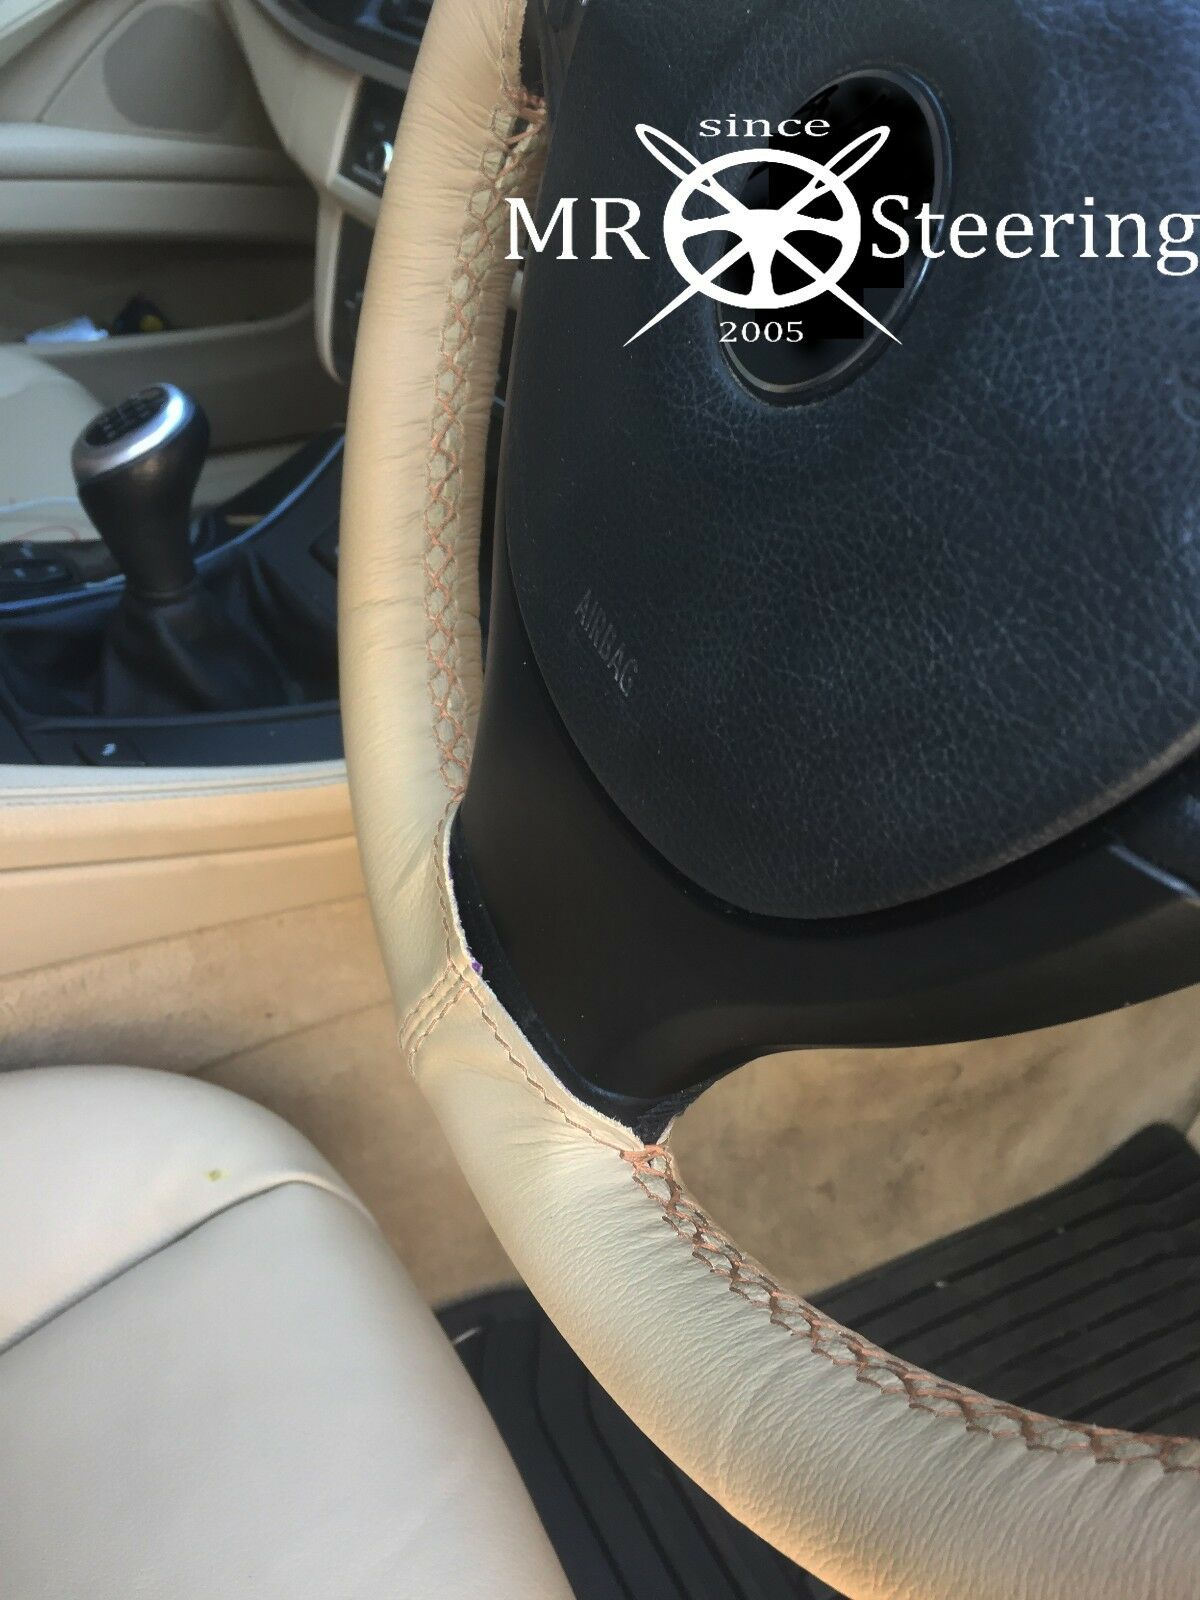 LAND ROVER DISCOVERY 4 09-PRESENT BLACK LEATHER BEIGE ST STEERING WHEEL COVER